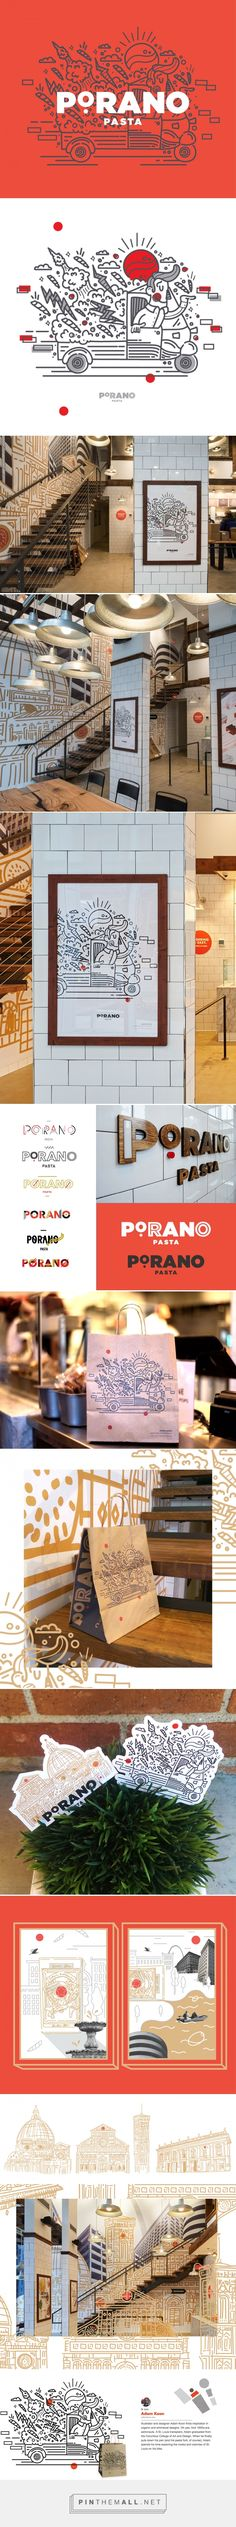 Porano on Behance